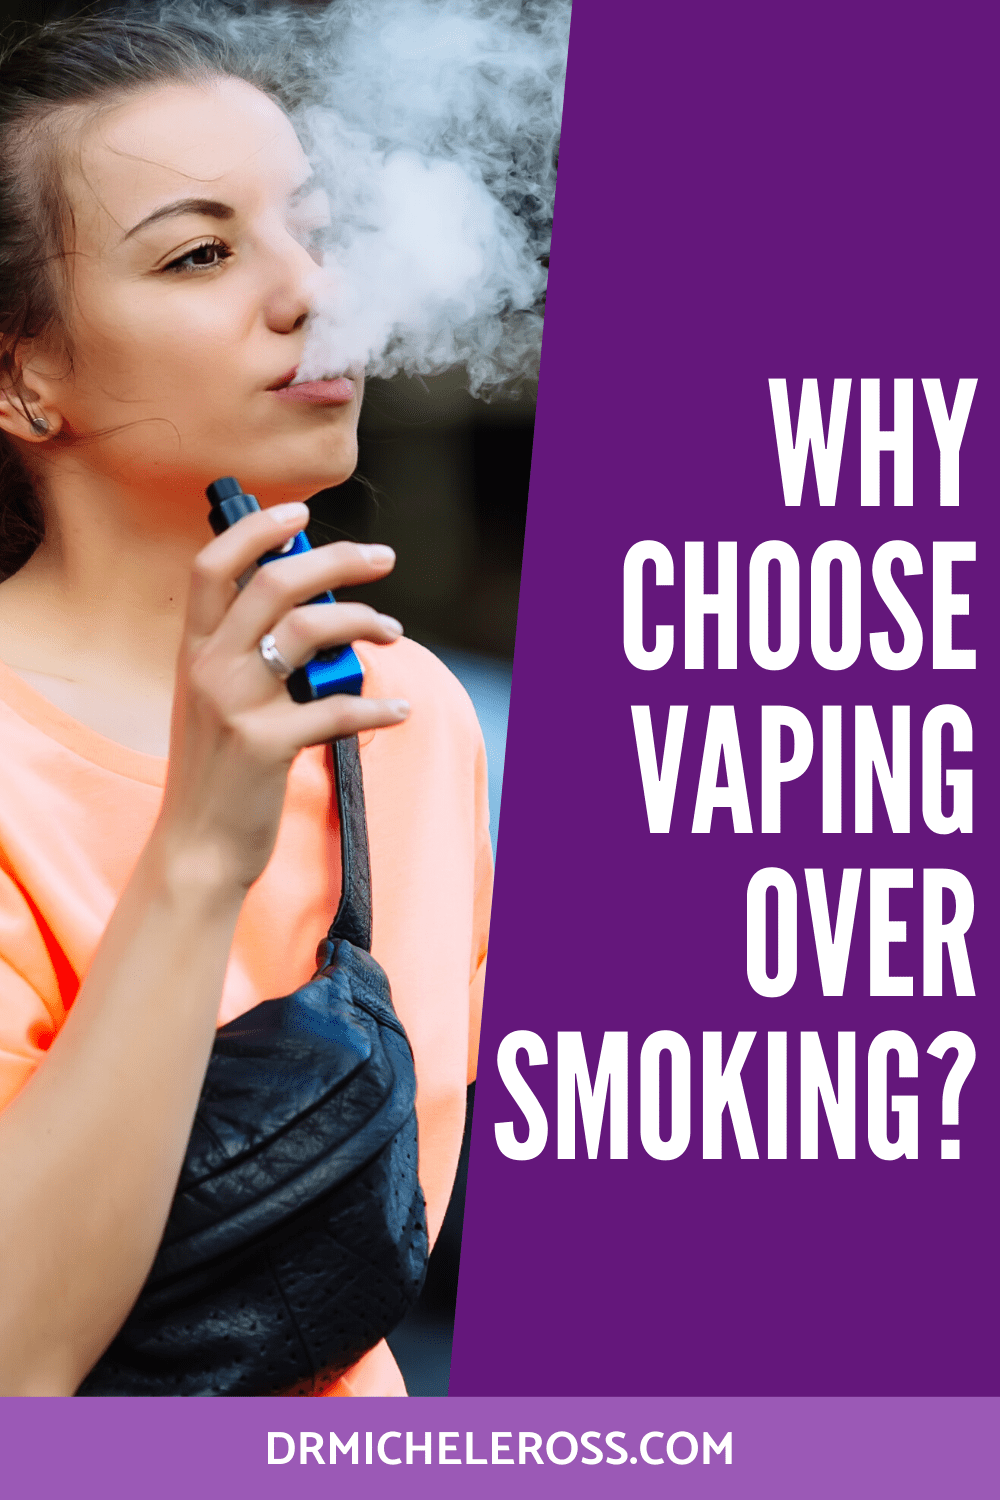 Why Do People Choose Vaping Over Smoking?